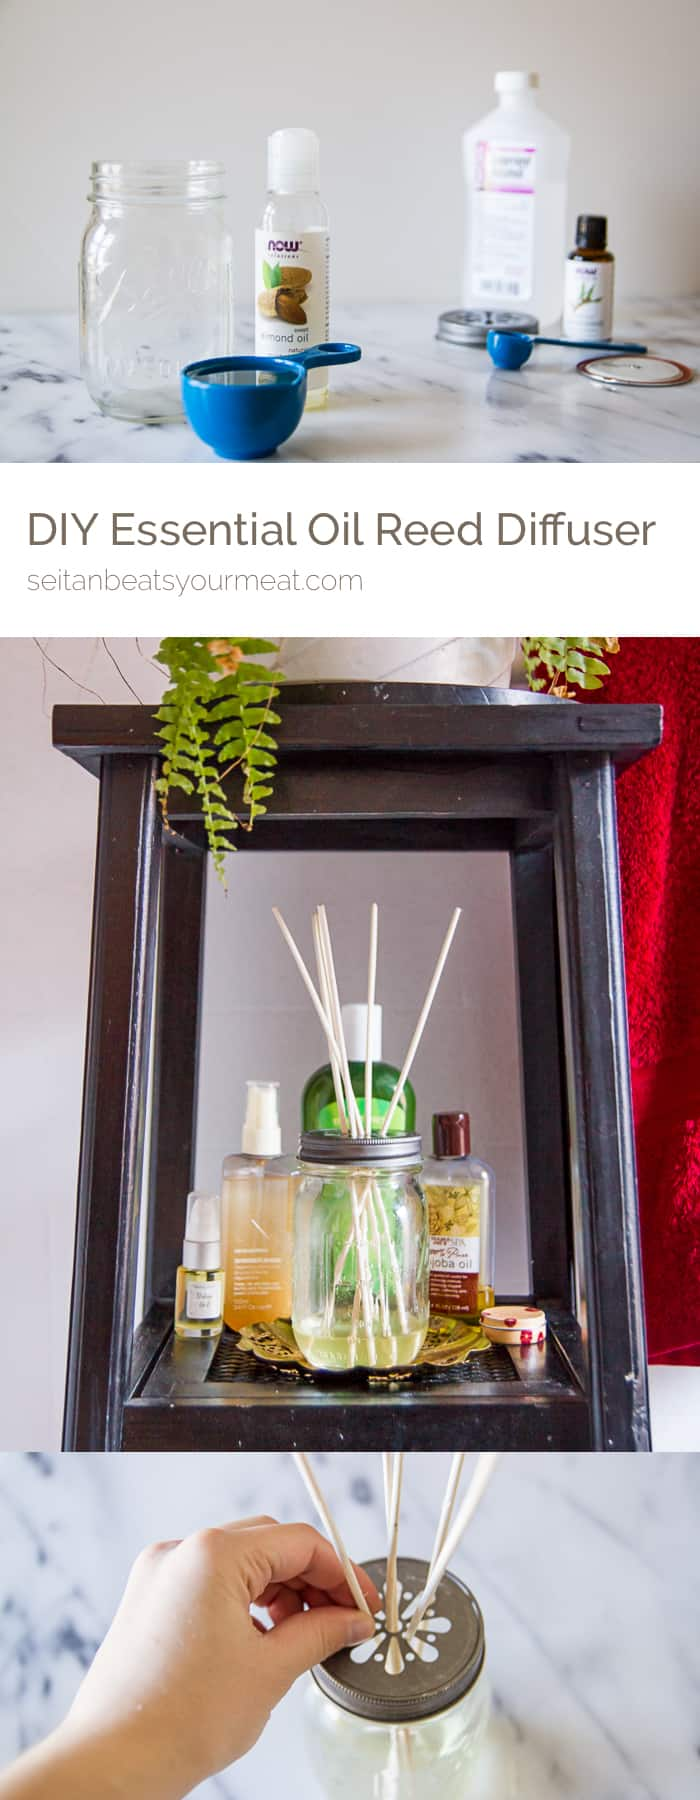 DIY essential oil reed diffuser | Seitan Beats Your Meat